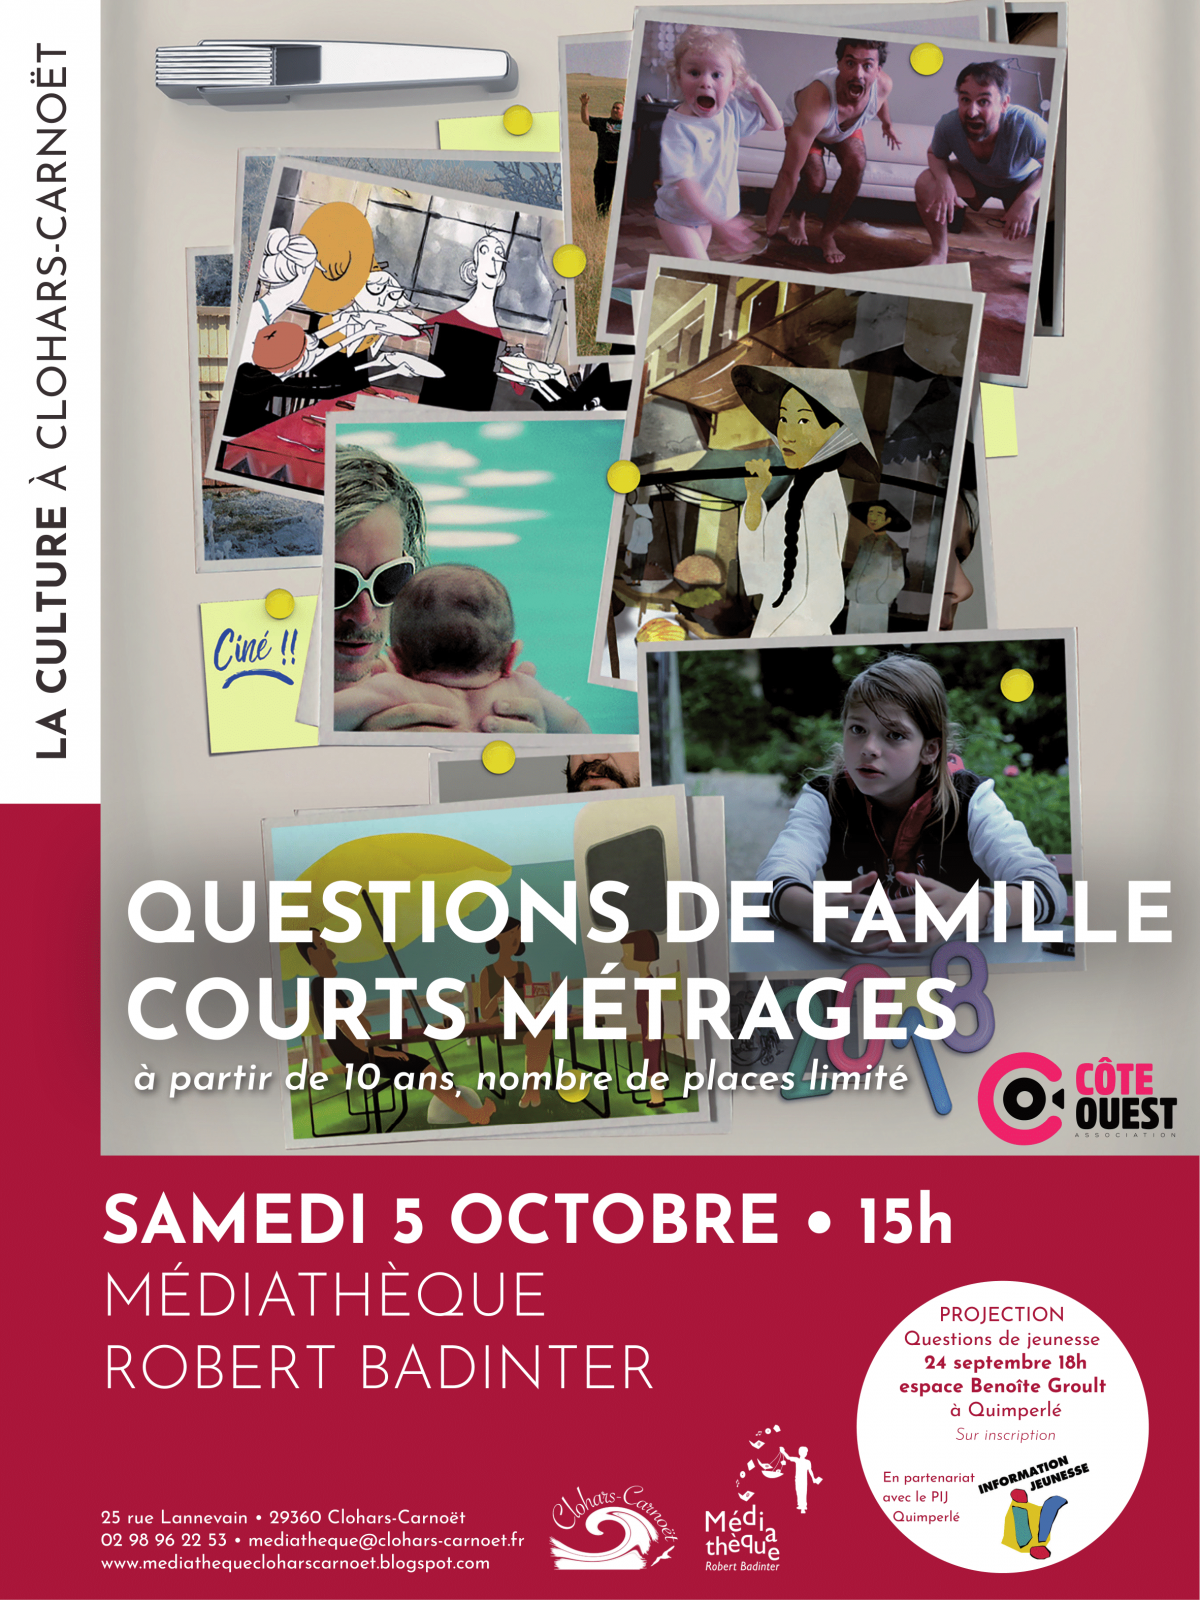 https://www.filmcourt.fr/IMG/png/affiche_question_famille-1-resp1200.png?1568190252